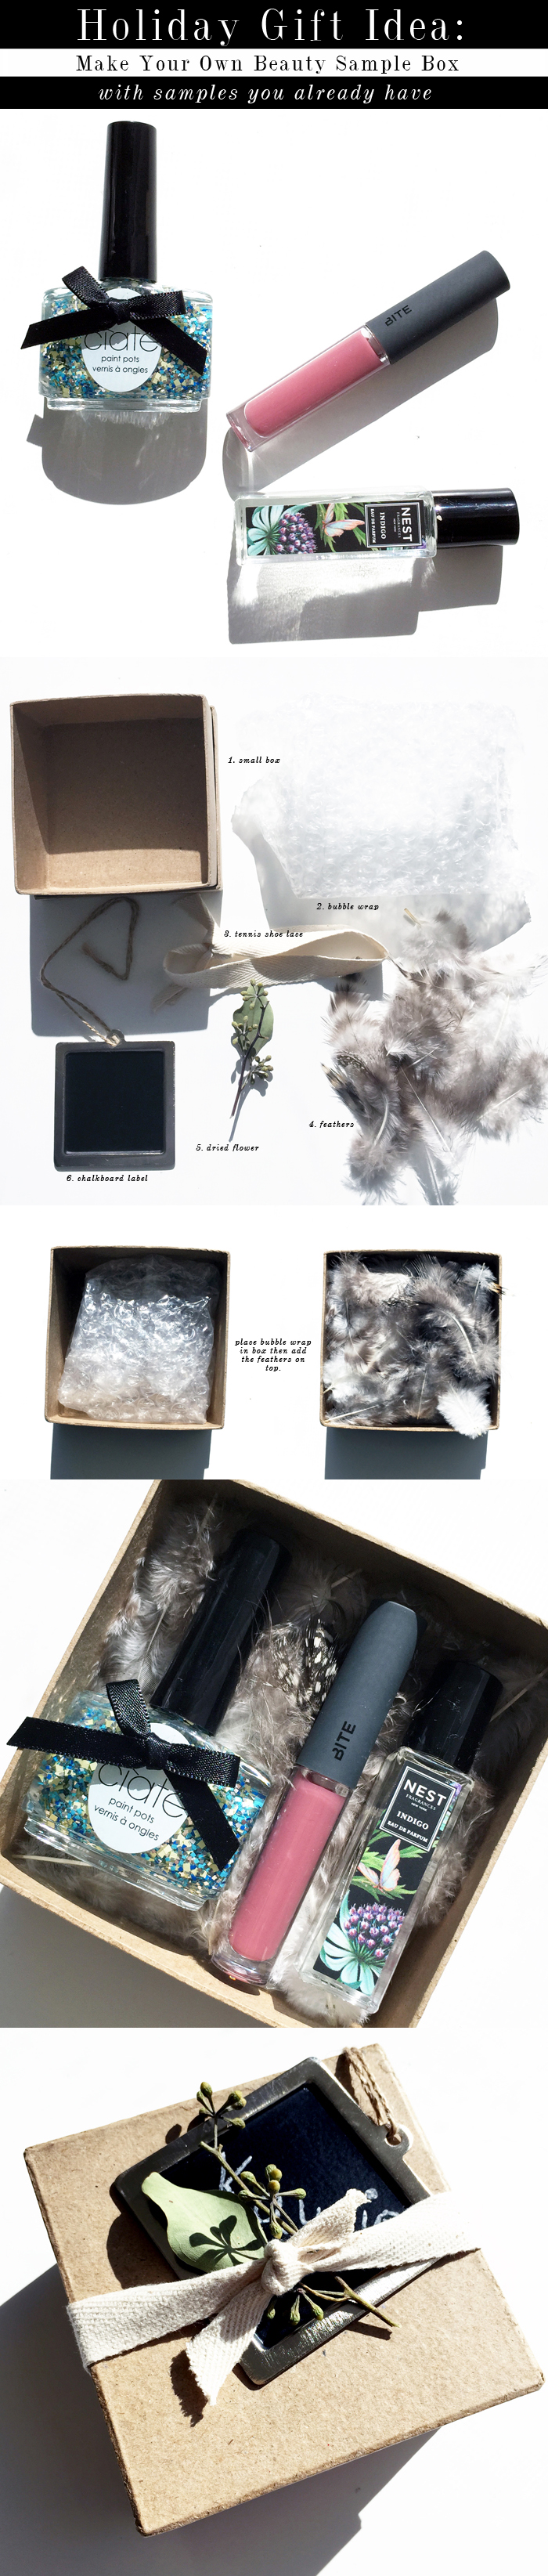 making your own beauty sample box gift